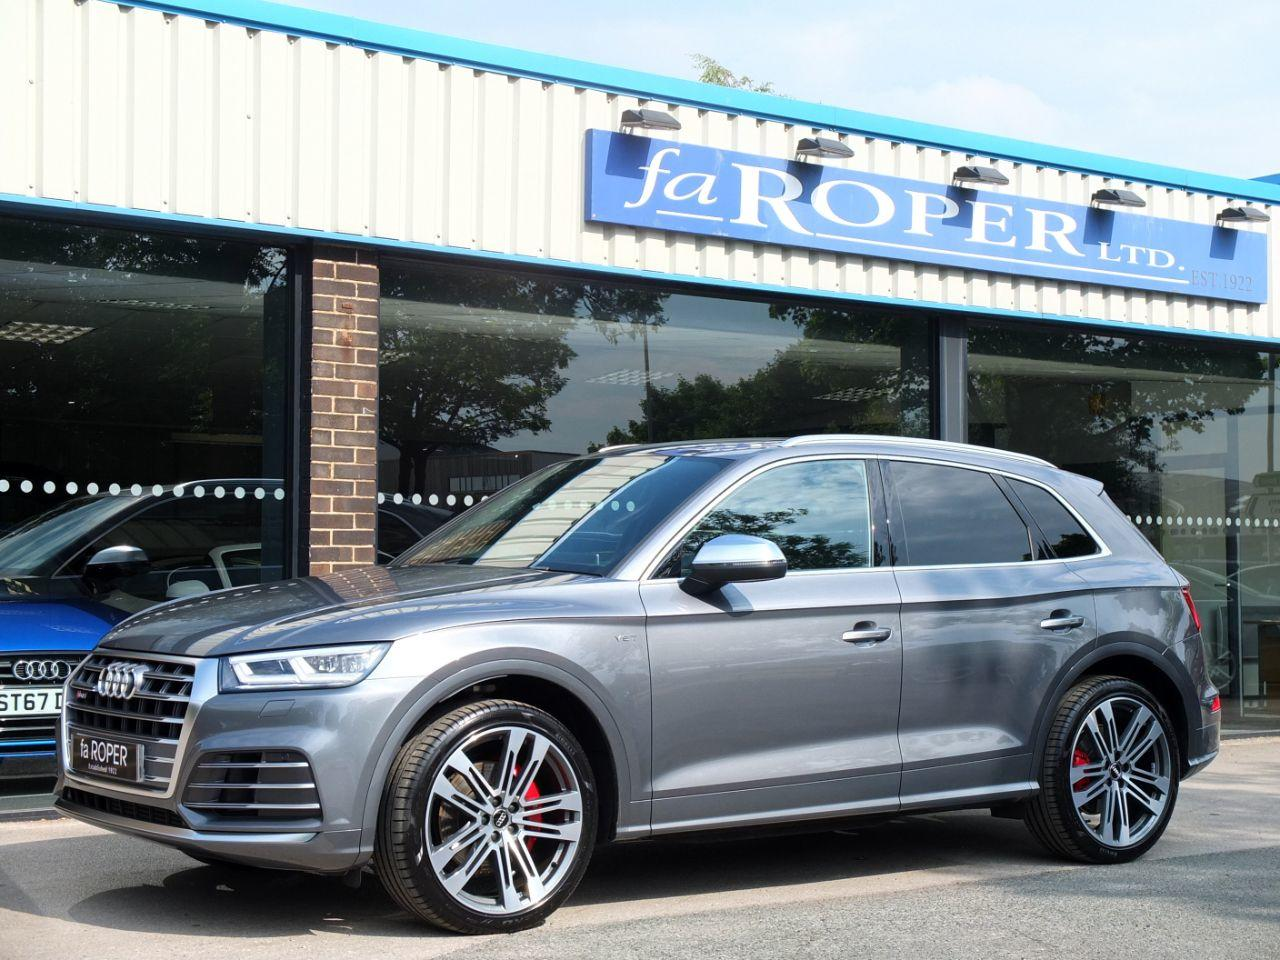 Audi Q5 SQ5 3.0 TFSI V6 quattro Auto 354ps Estate Petrol Monsoon Grey Metallic